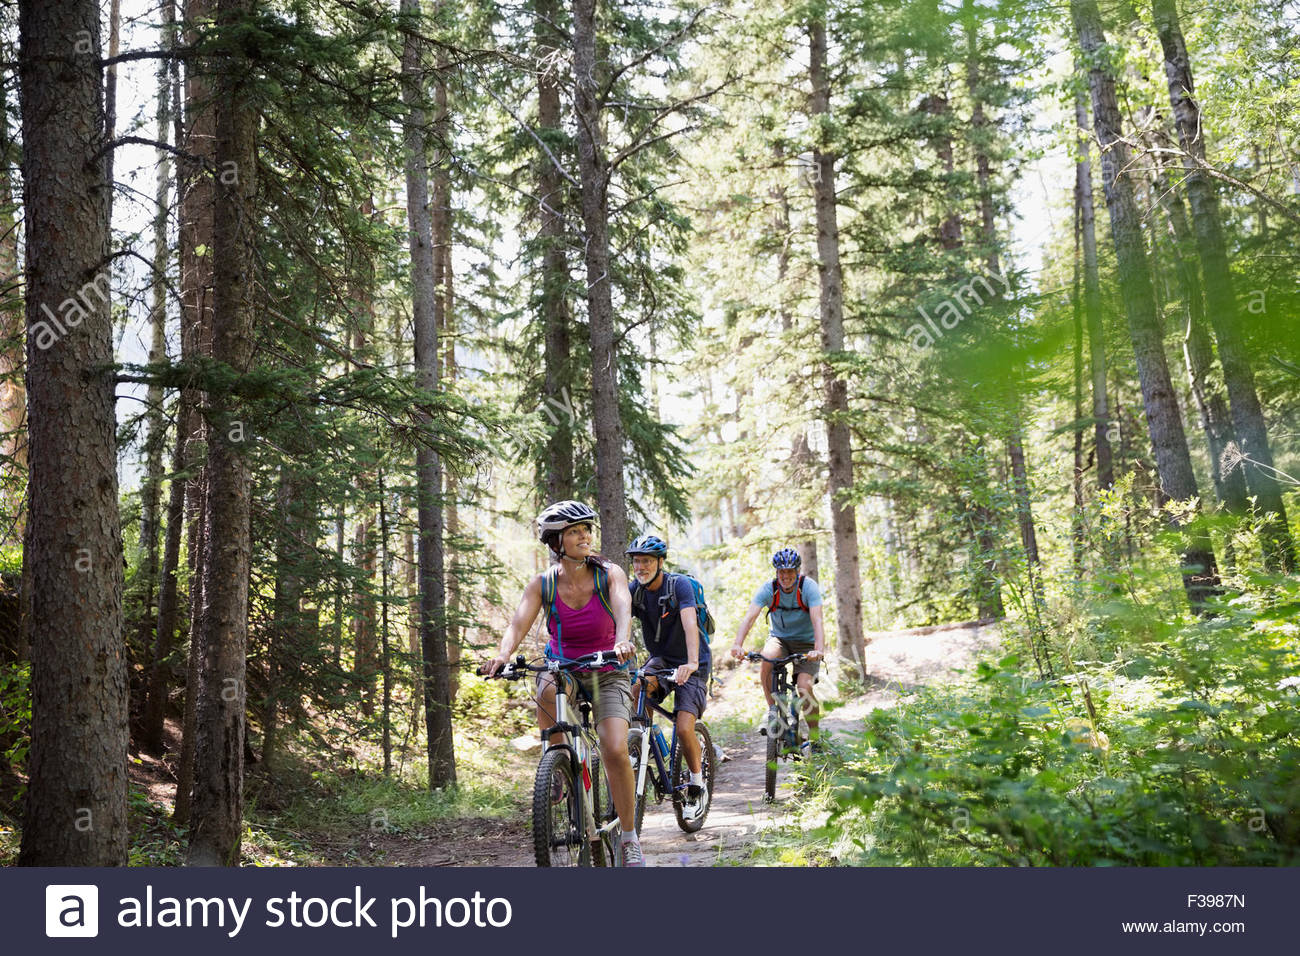 Friends mountain biking on trail in woods - Stock Image